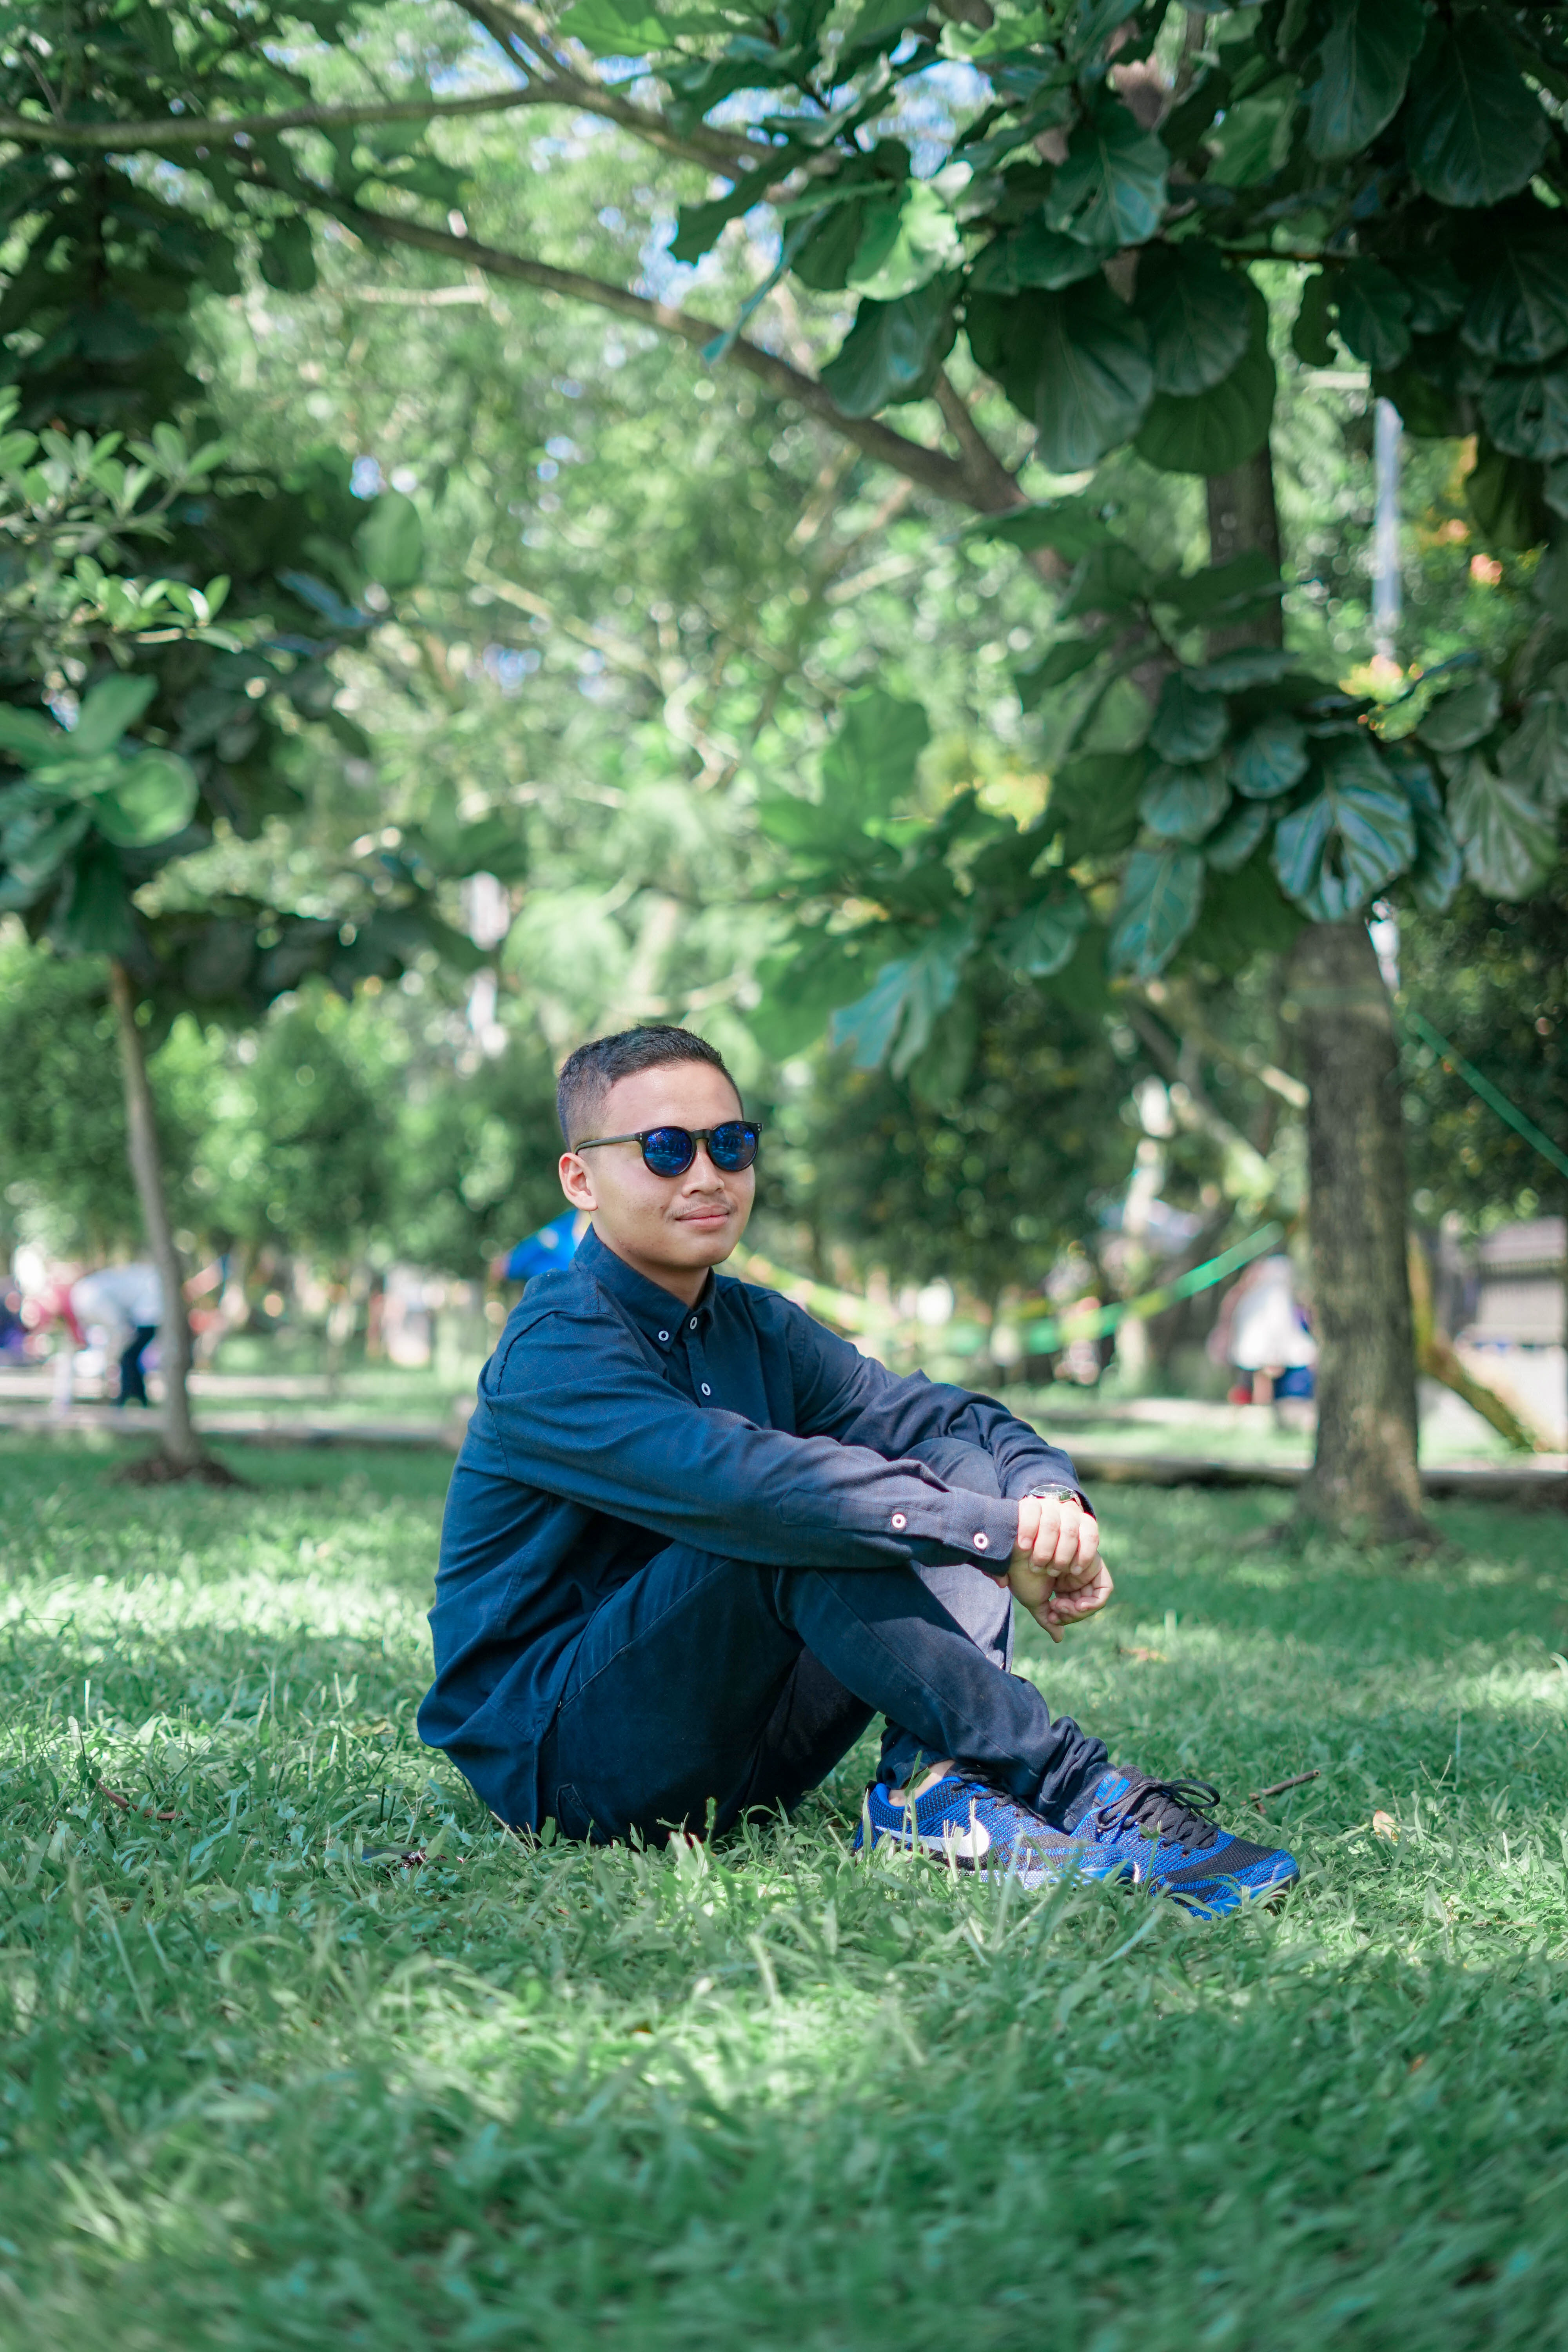 Man Wearing Blue Dress Shirts Seating on Grass, Daytime, Park, Wear, Trees, HQ Photo